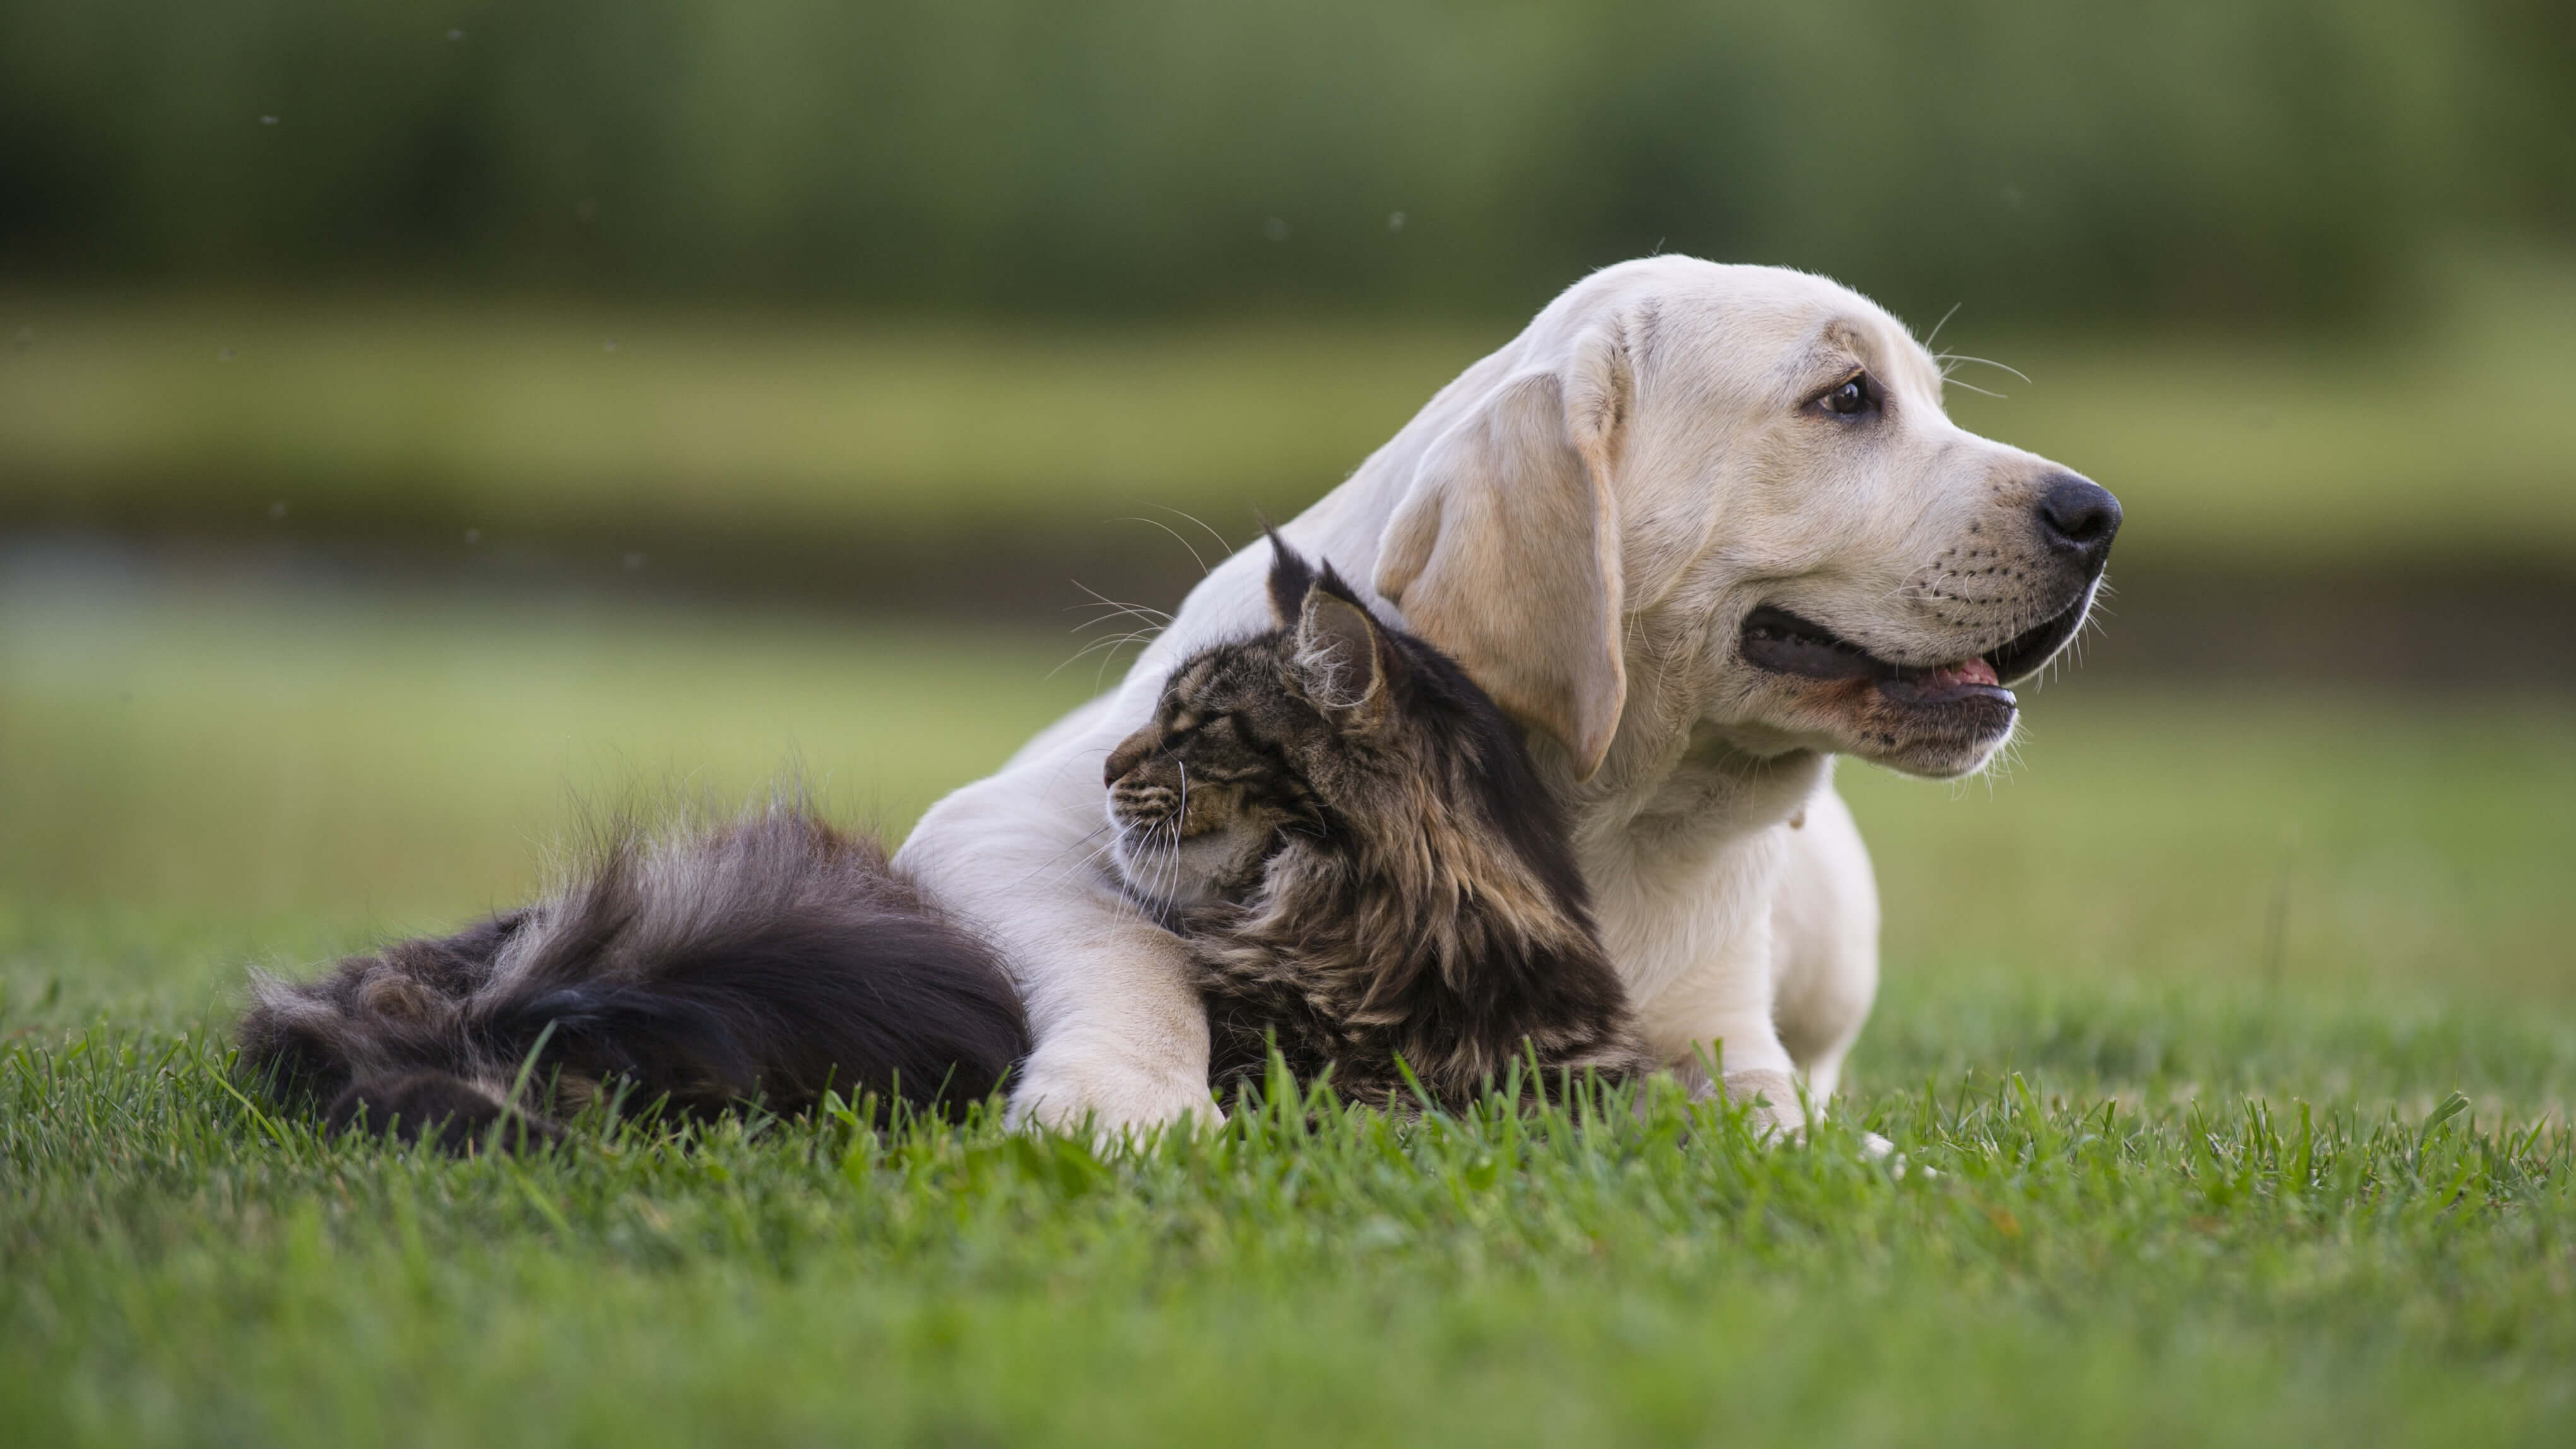 A dog and cat hugging each other while lying in the grass